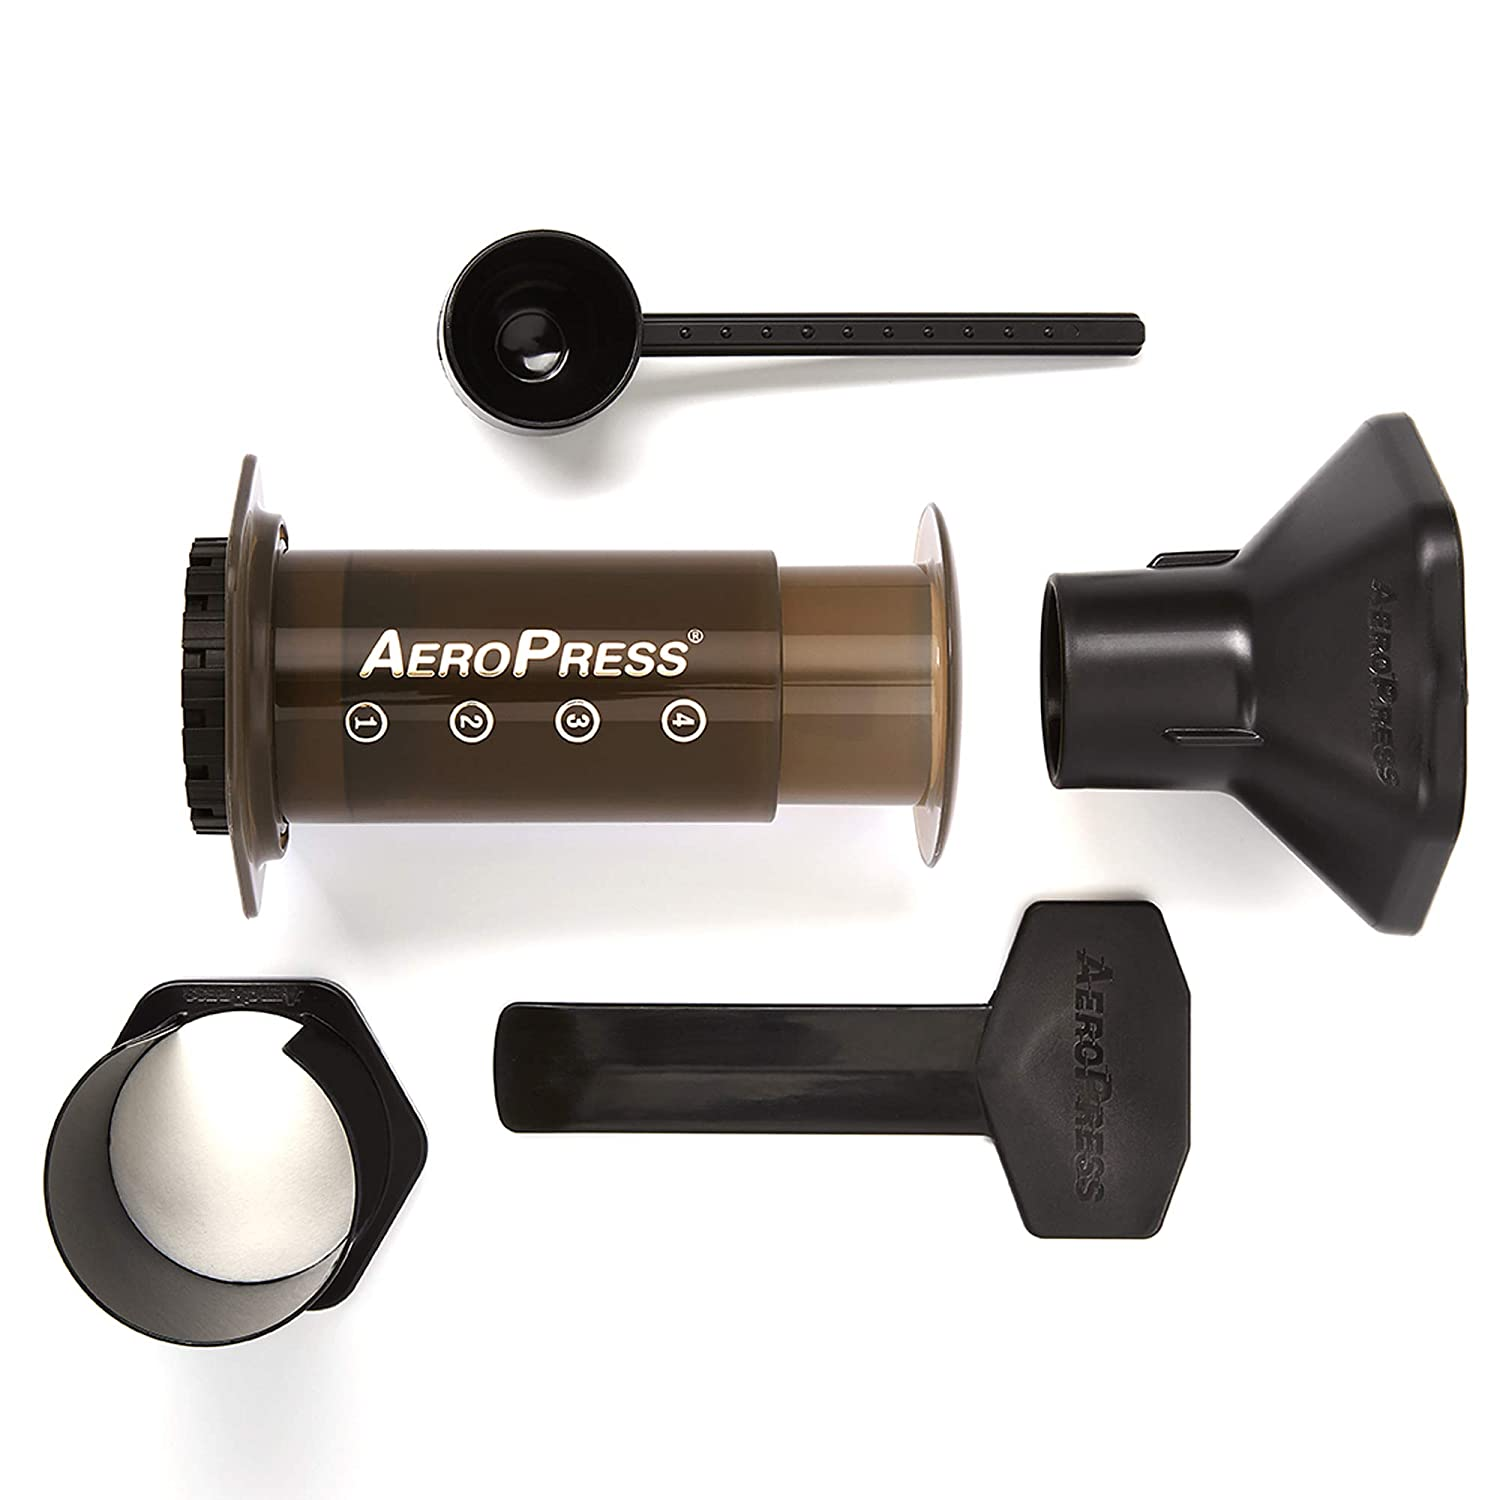 Amazon.com: AeroPress Coffee and Espresso Maker, AeroPress ...